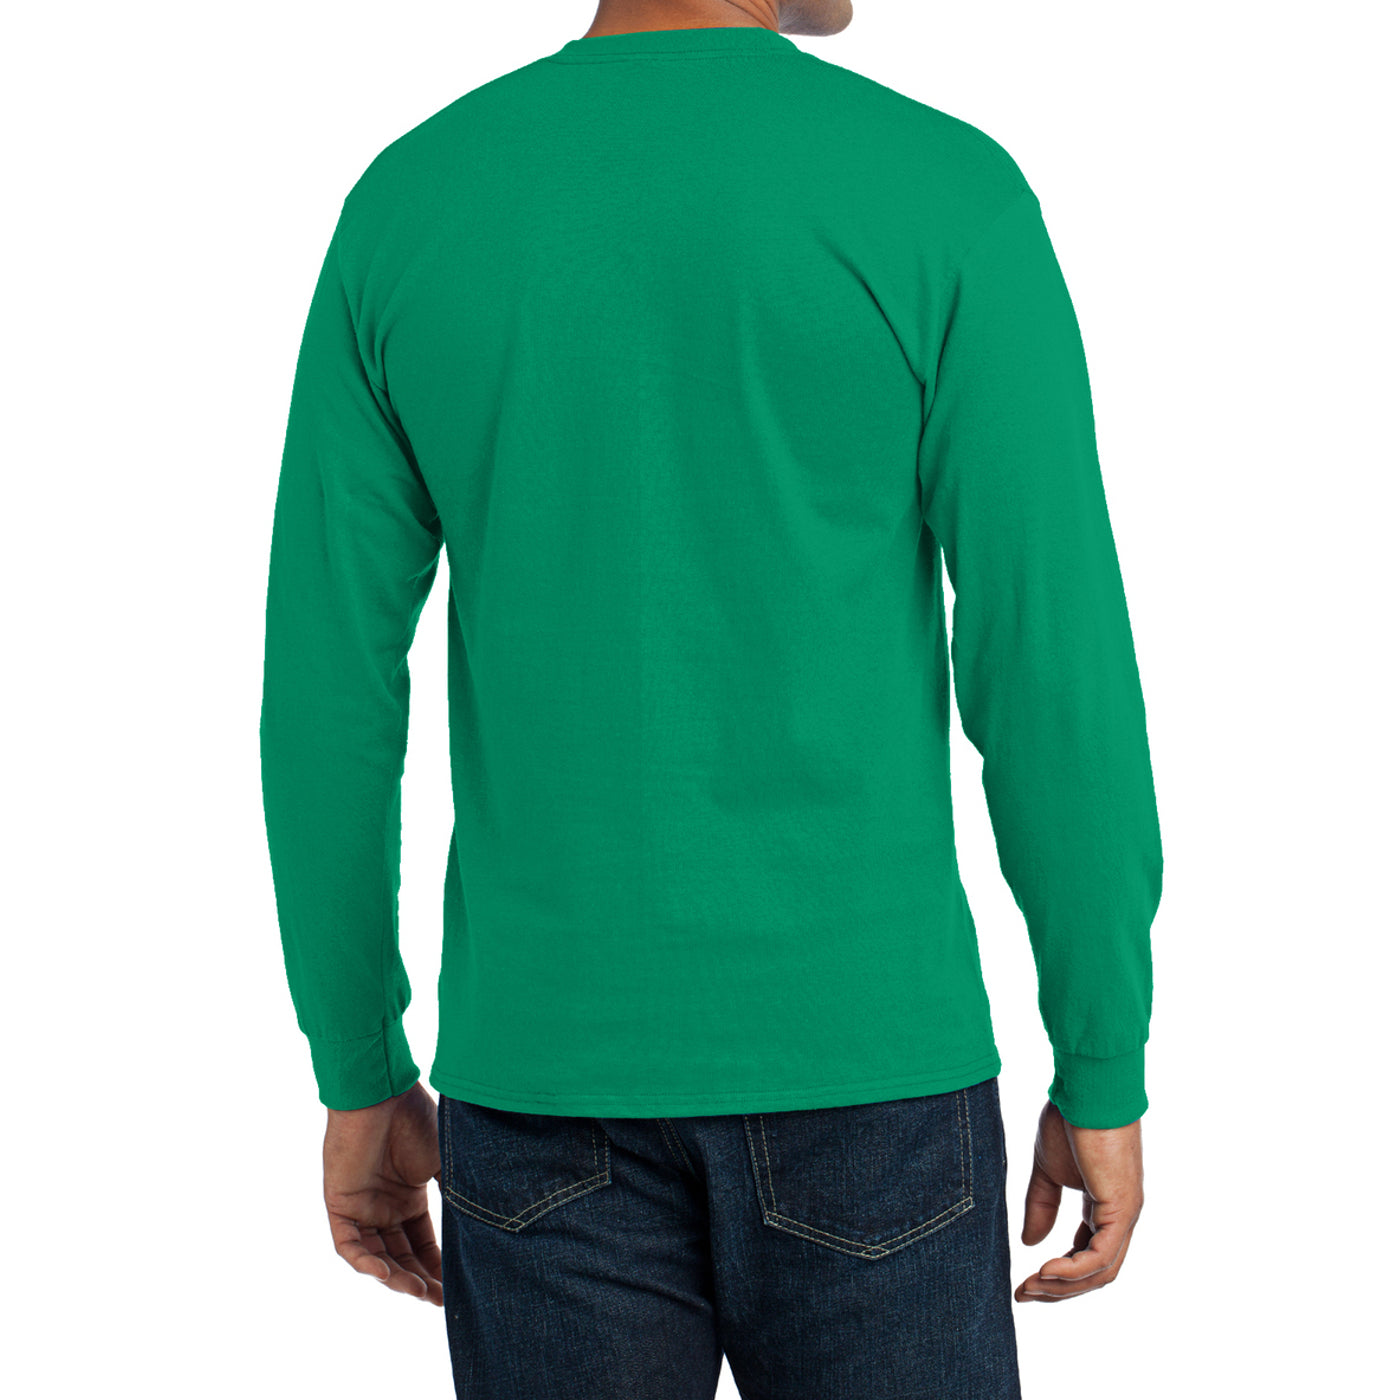 Men's Long Sleeve Core Blend Tee - Kelly – Back